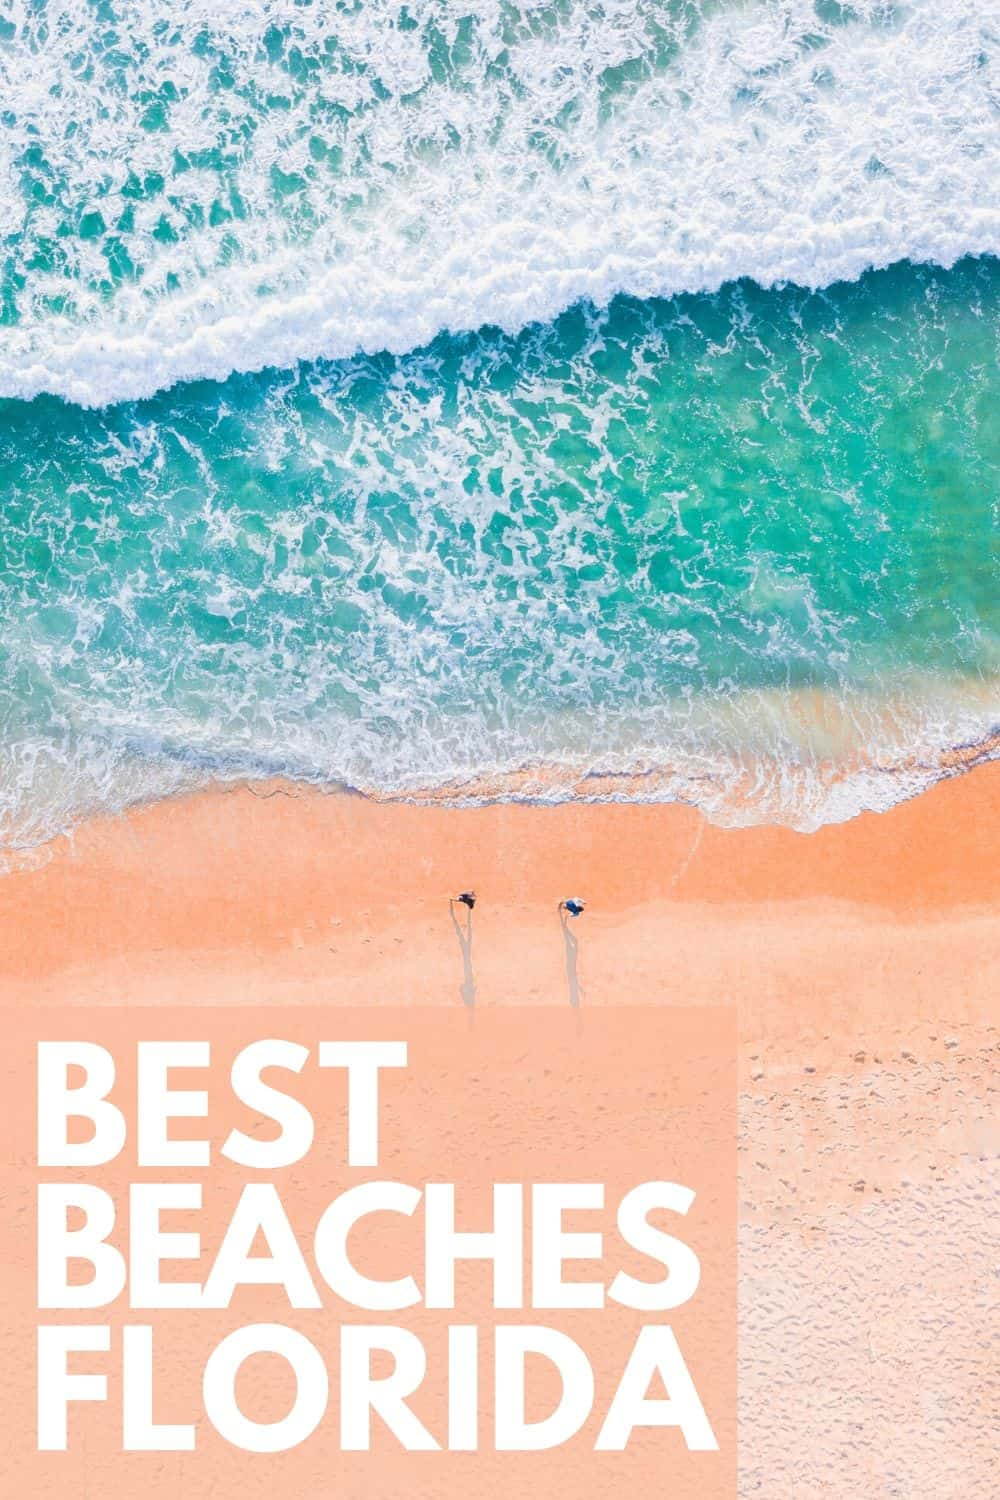 Best beaches in Florida - East & West Coast